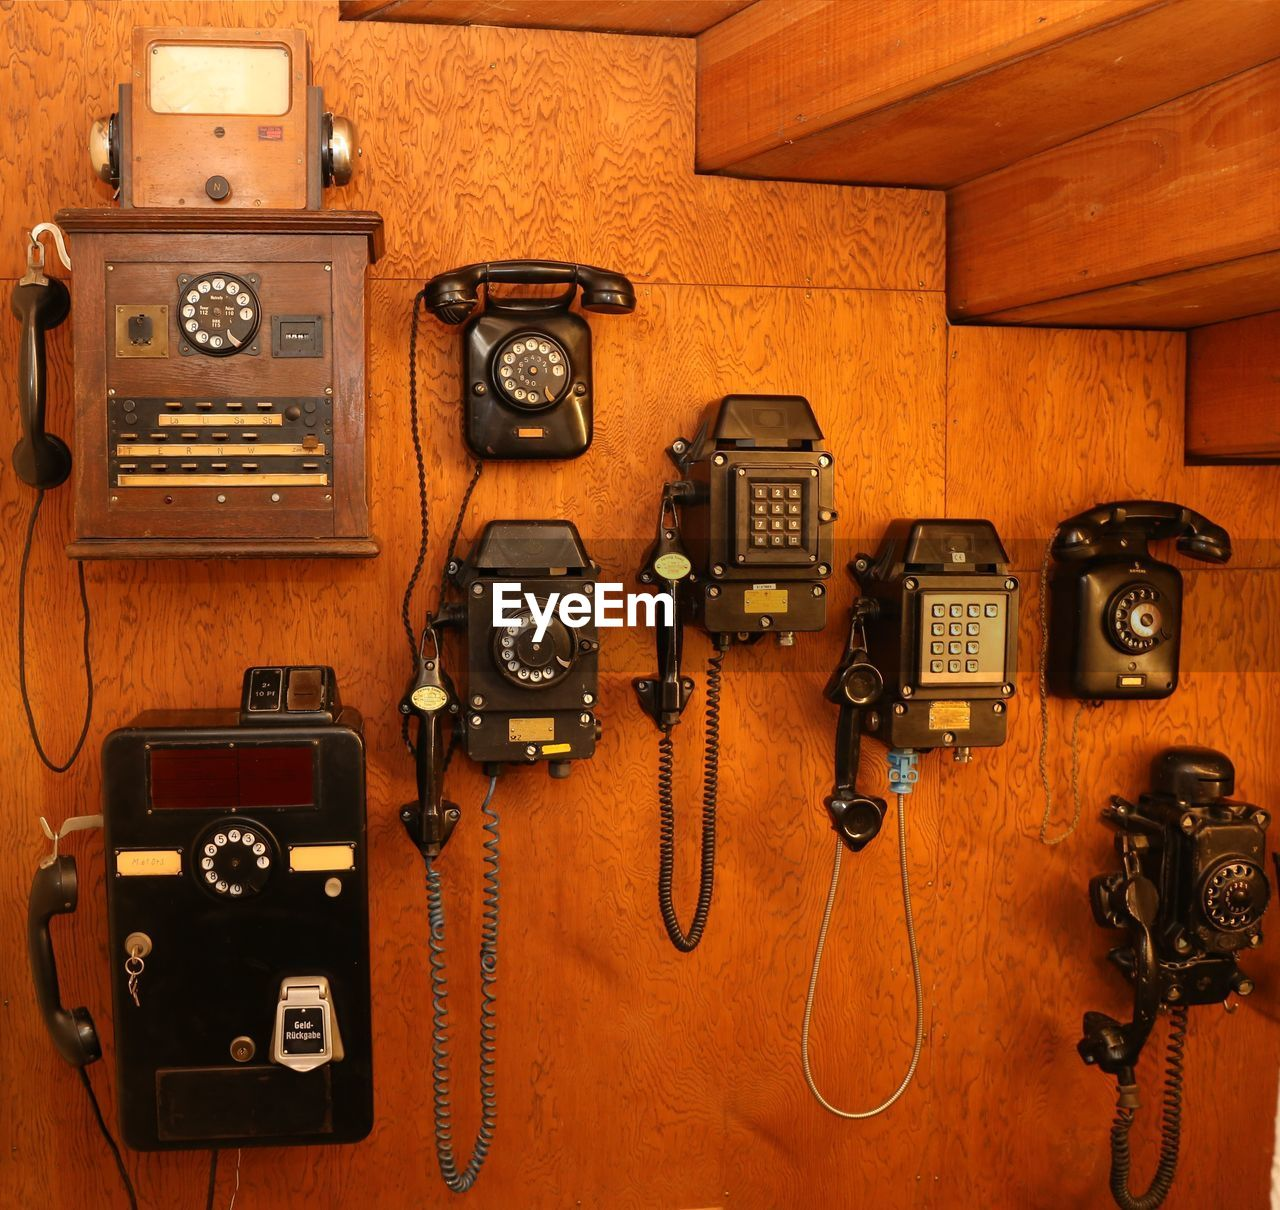 technology, old-fashioned, retro styled, old, indoors, connection, no people, wood - material, camera - photographic equipment, variation, antique, communication, photography themes, telephone, close-up, industry, rotary phone, movie camera, man made, day